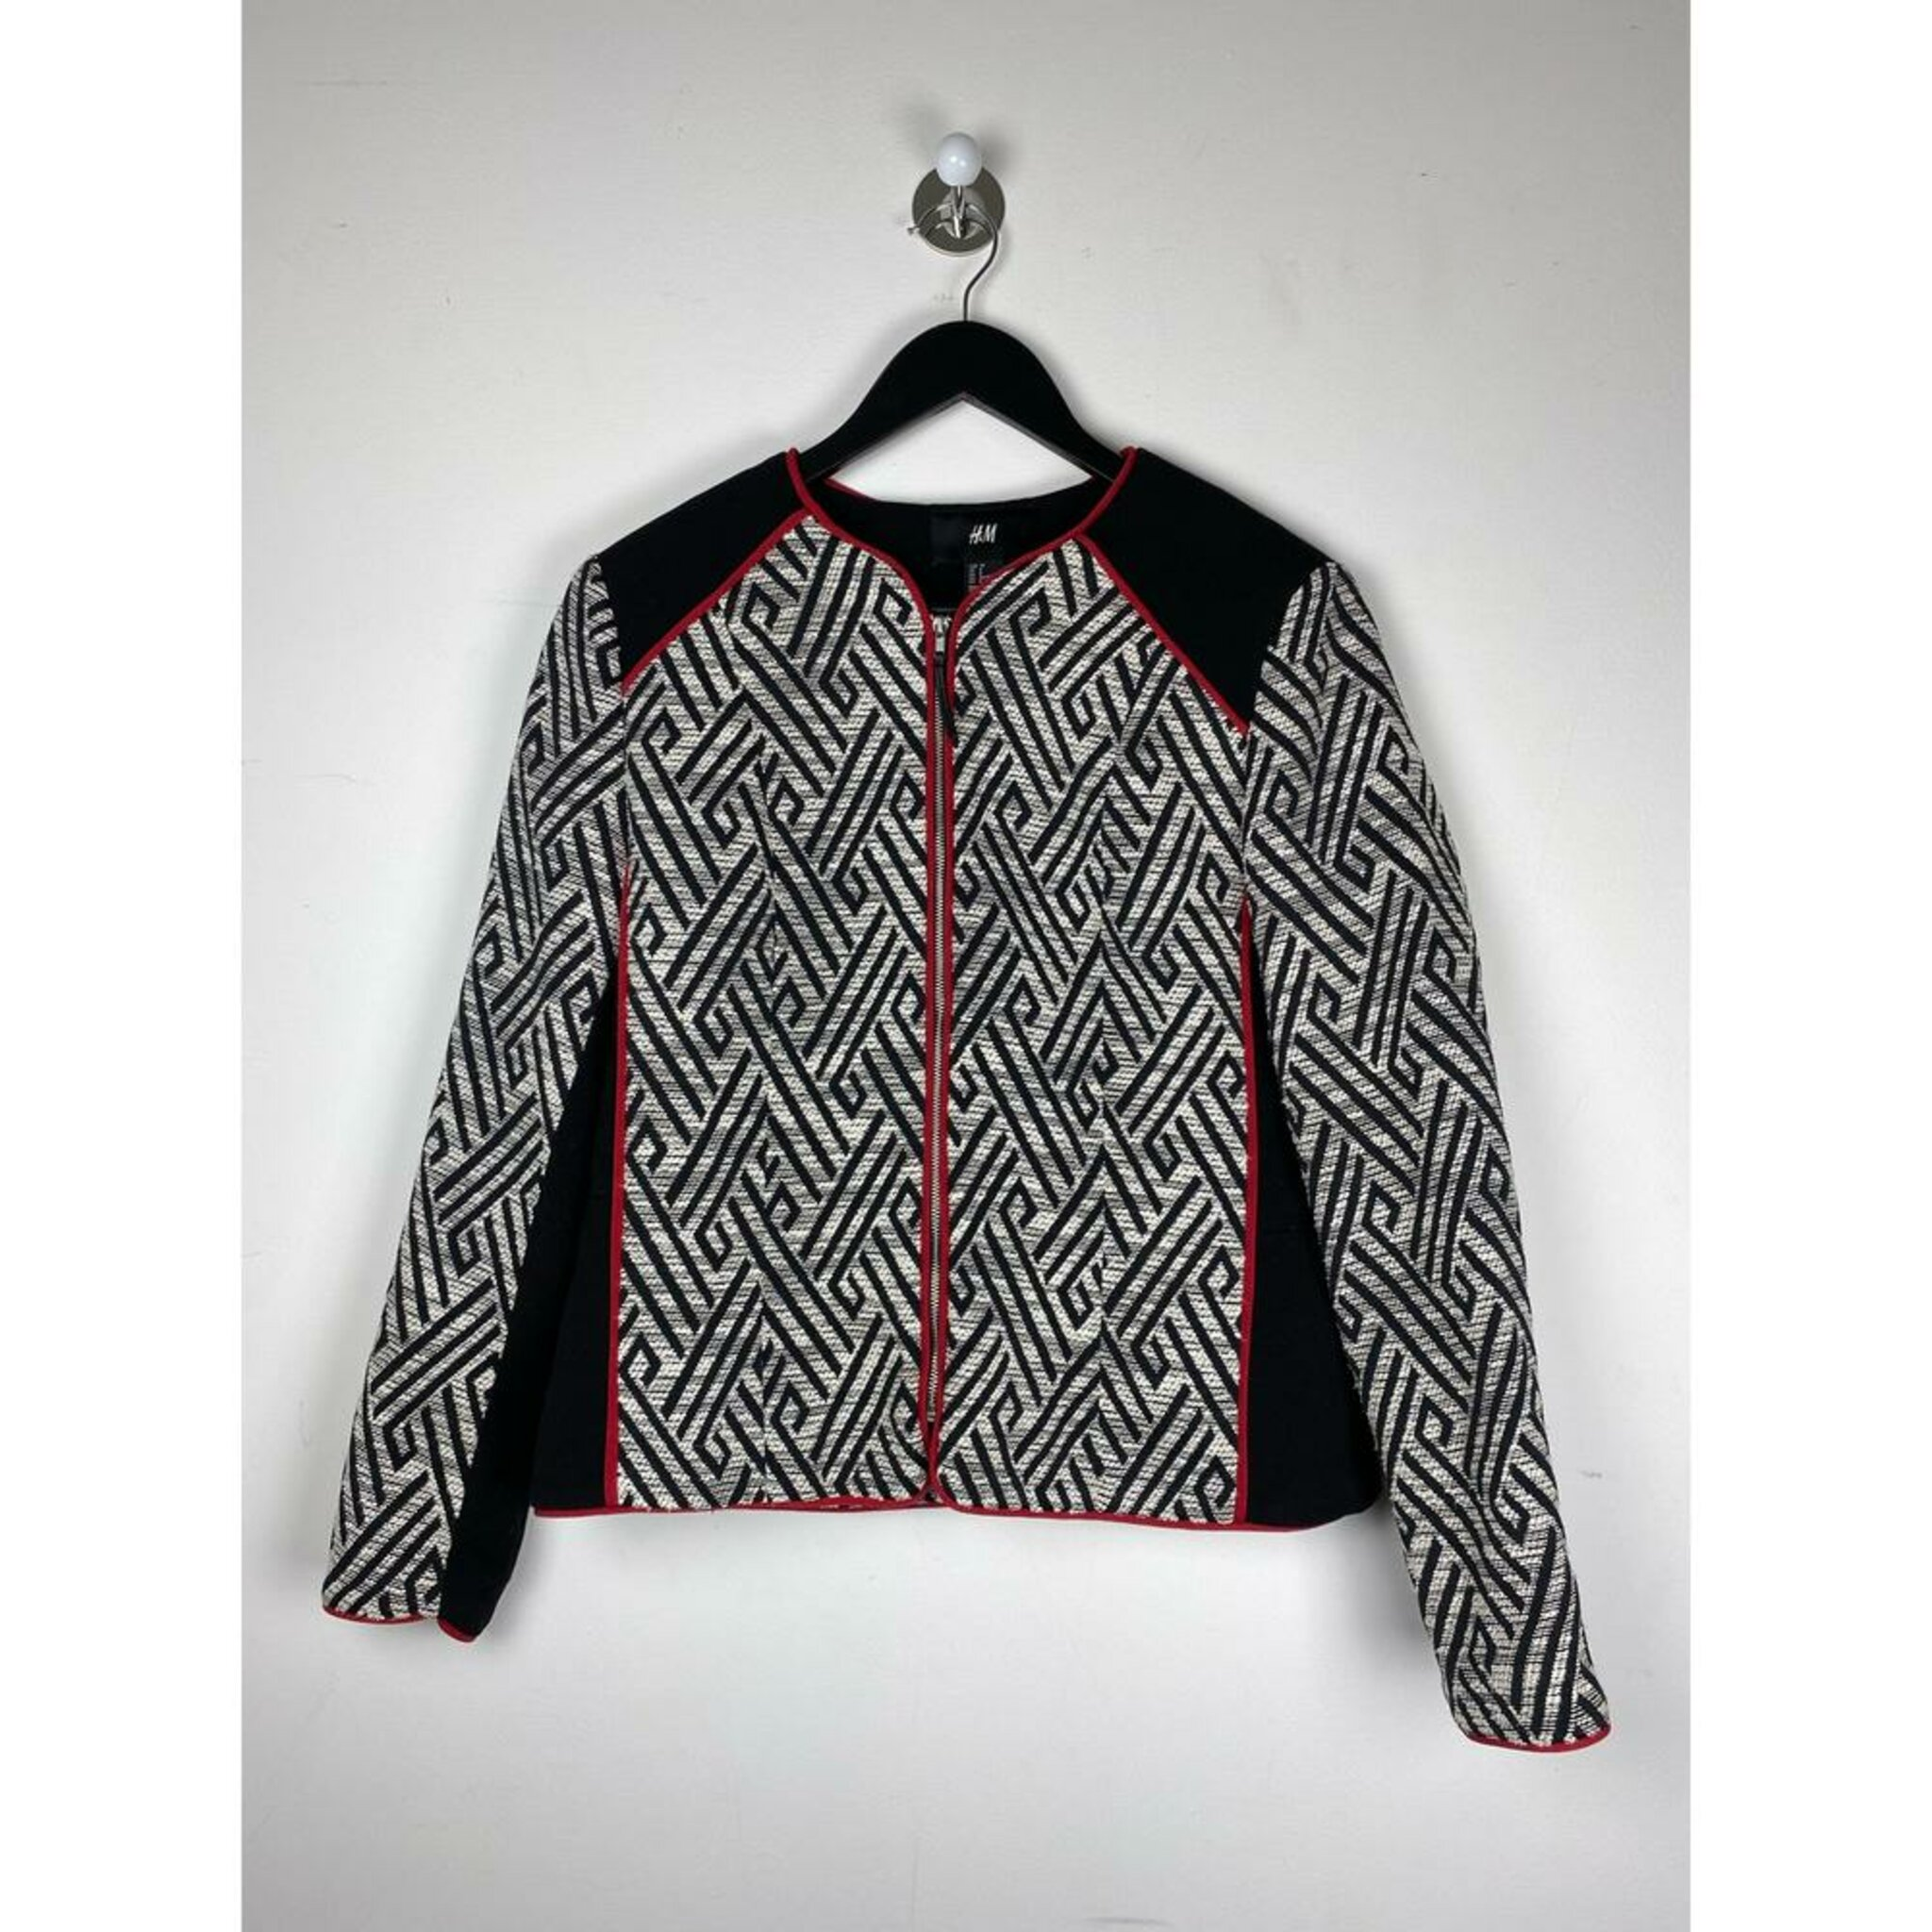 Jacket by H&M, 38